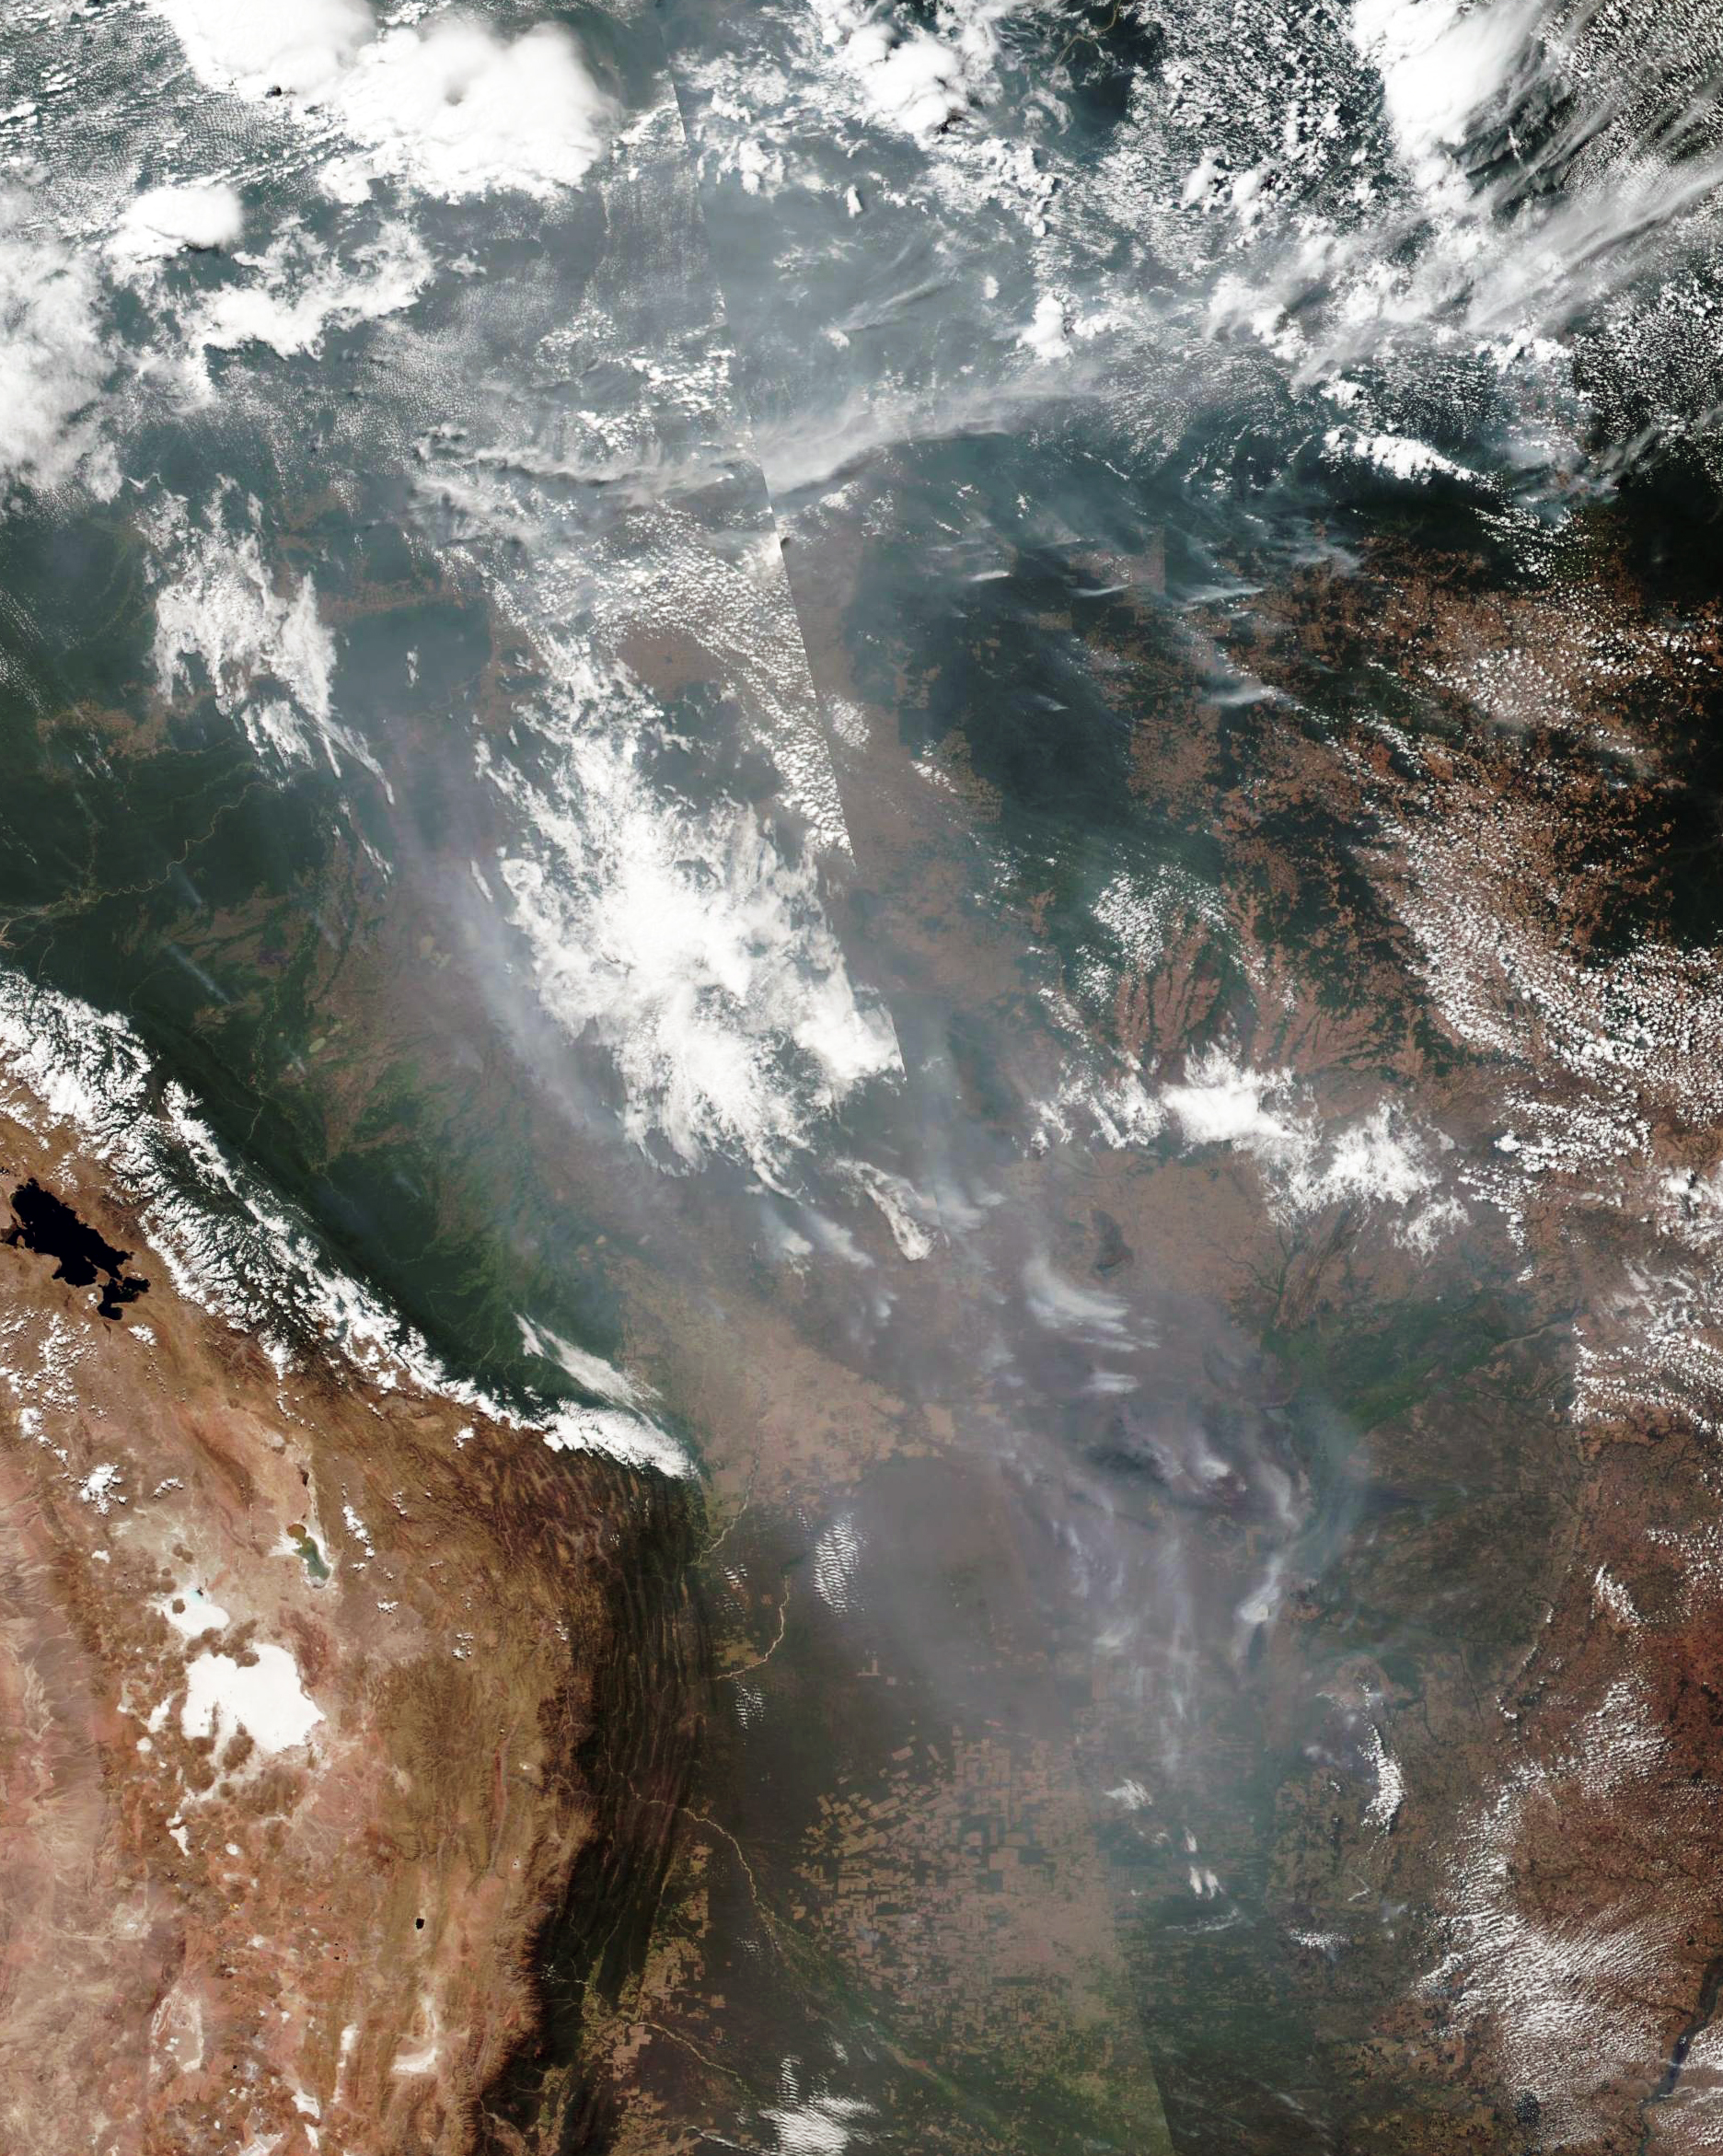 Smoke is visible from space as wildfires burn in the Brazilian states of Amazonas, Mato Grosso, and Rondônia. Nearly 73,000 fires have been reported throughout the Amazon basin this year, a record number that has caused international concern for the future of the world's largest and most biodiverse tract of rainforest. The fires, many of which have been set by loggers and ranchers to clear land for cattle, have also ignited global debate about the environment and agricultural production.  -6.300000°, -61.620000°  Source imagery: National Aeronautics and Space Administration (NASA) & National Oceanic and Atmospheric Administration (NOAA)